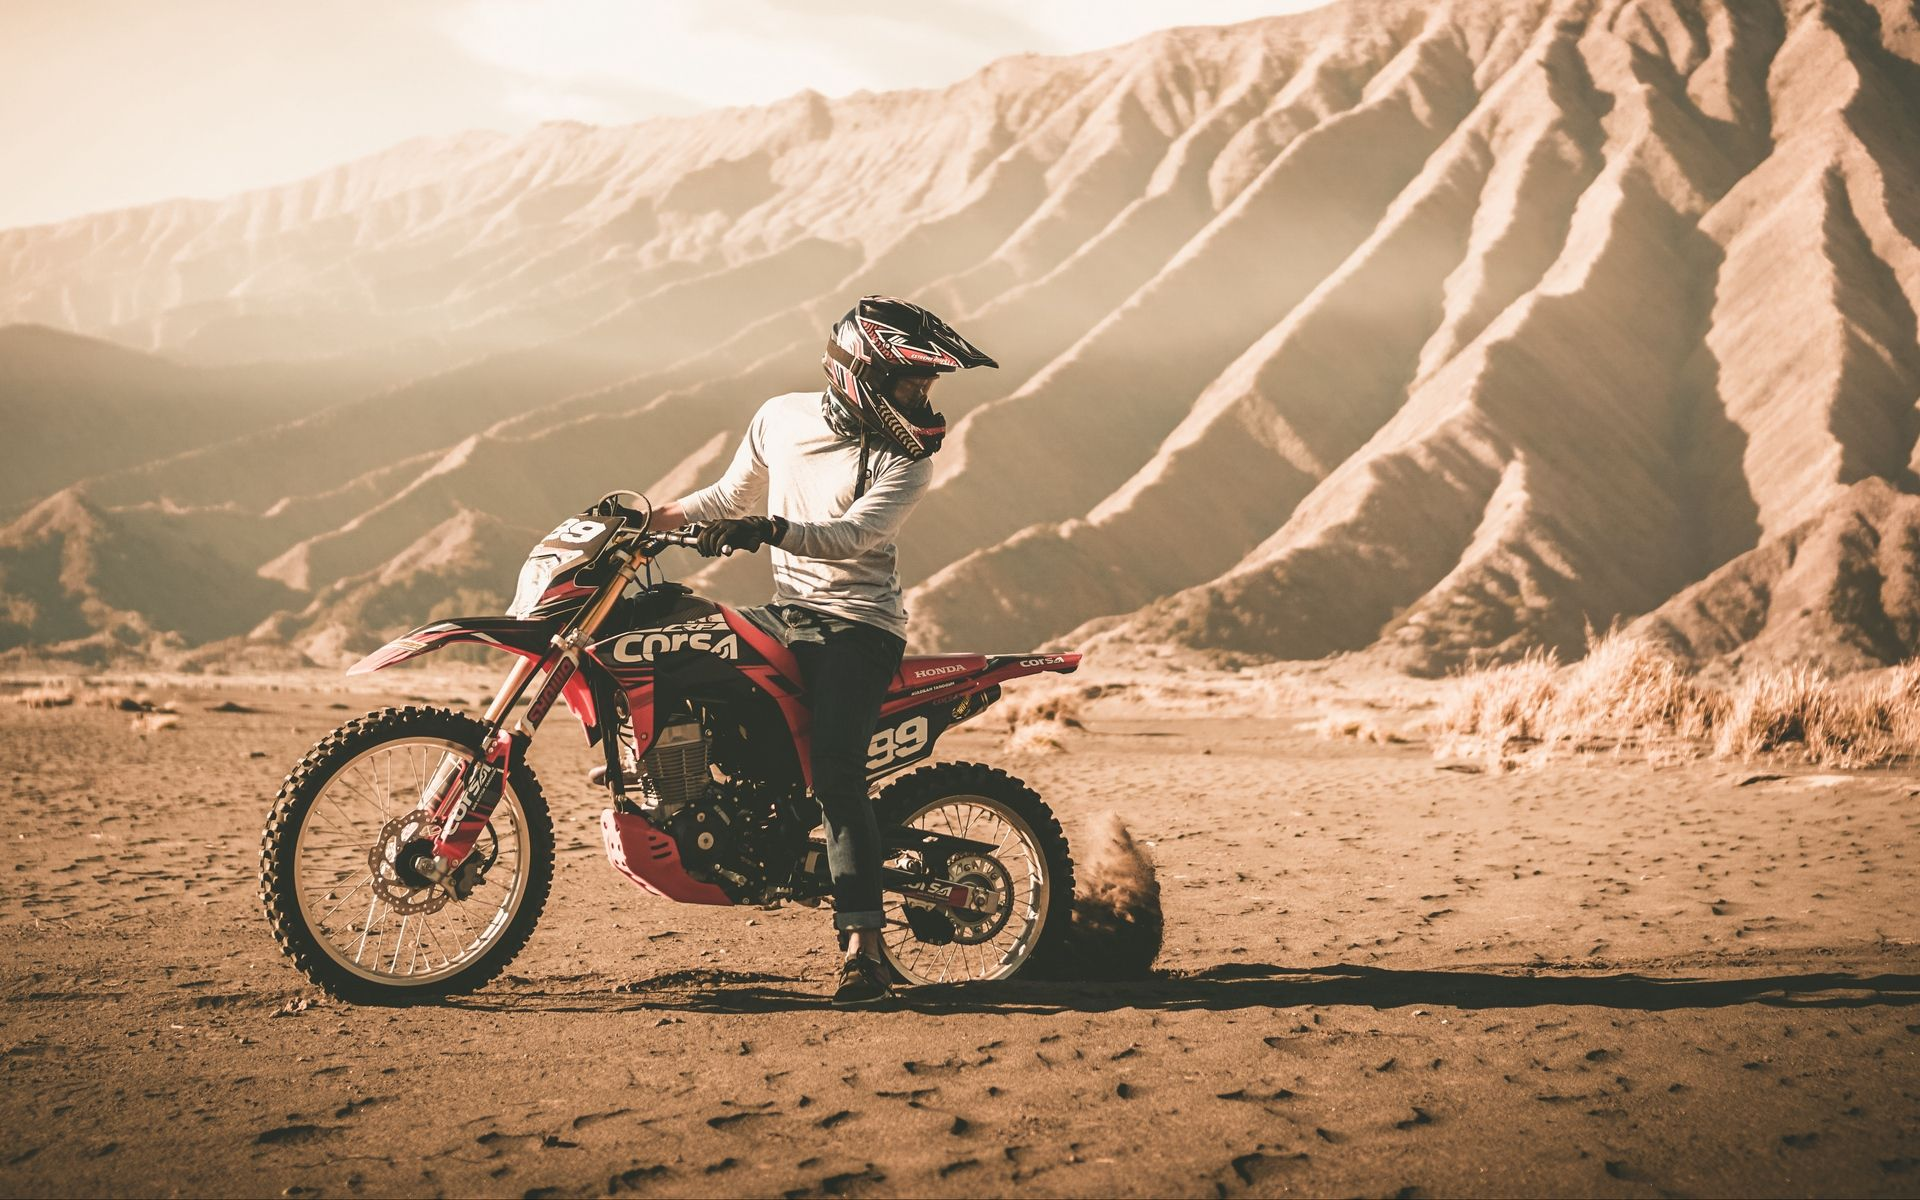 Rider Hd Wallpaper Rider Motorcycle Wallpaper Enduro Motorcycle